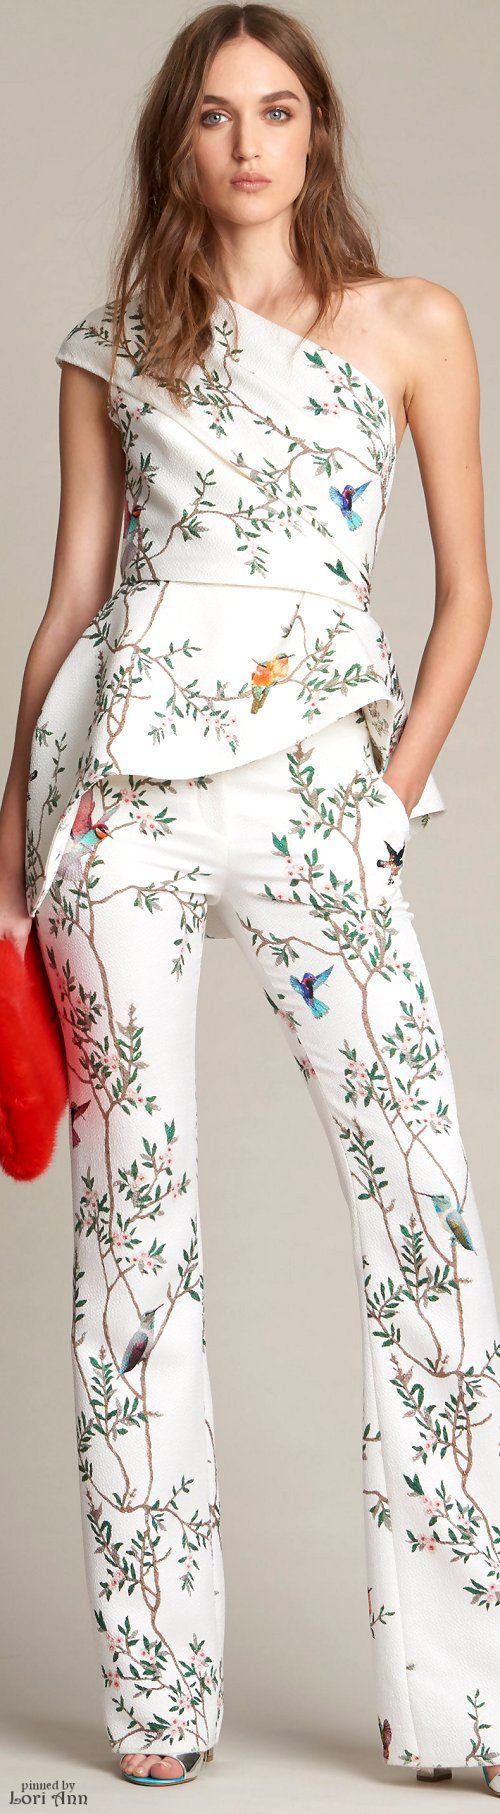 Monique Lhuillier Pre-Fall 2016 women fashion outfit clothing style apparel @roressclothes closet ideas